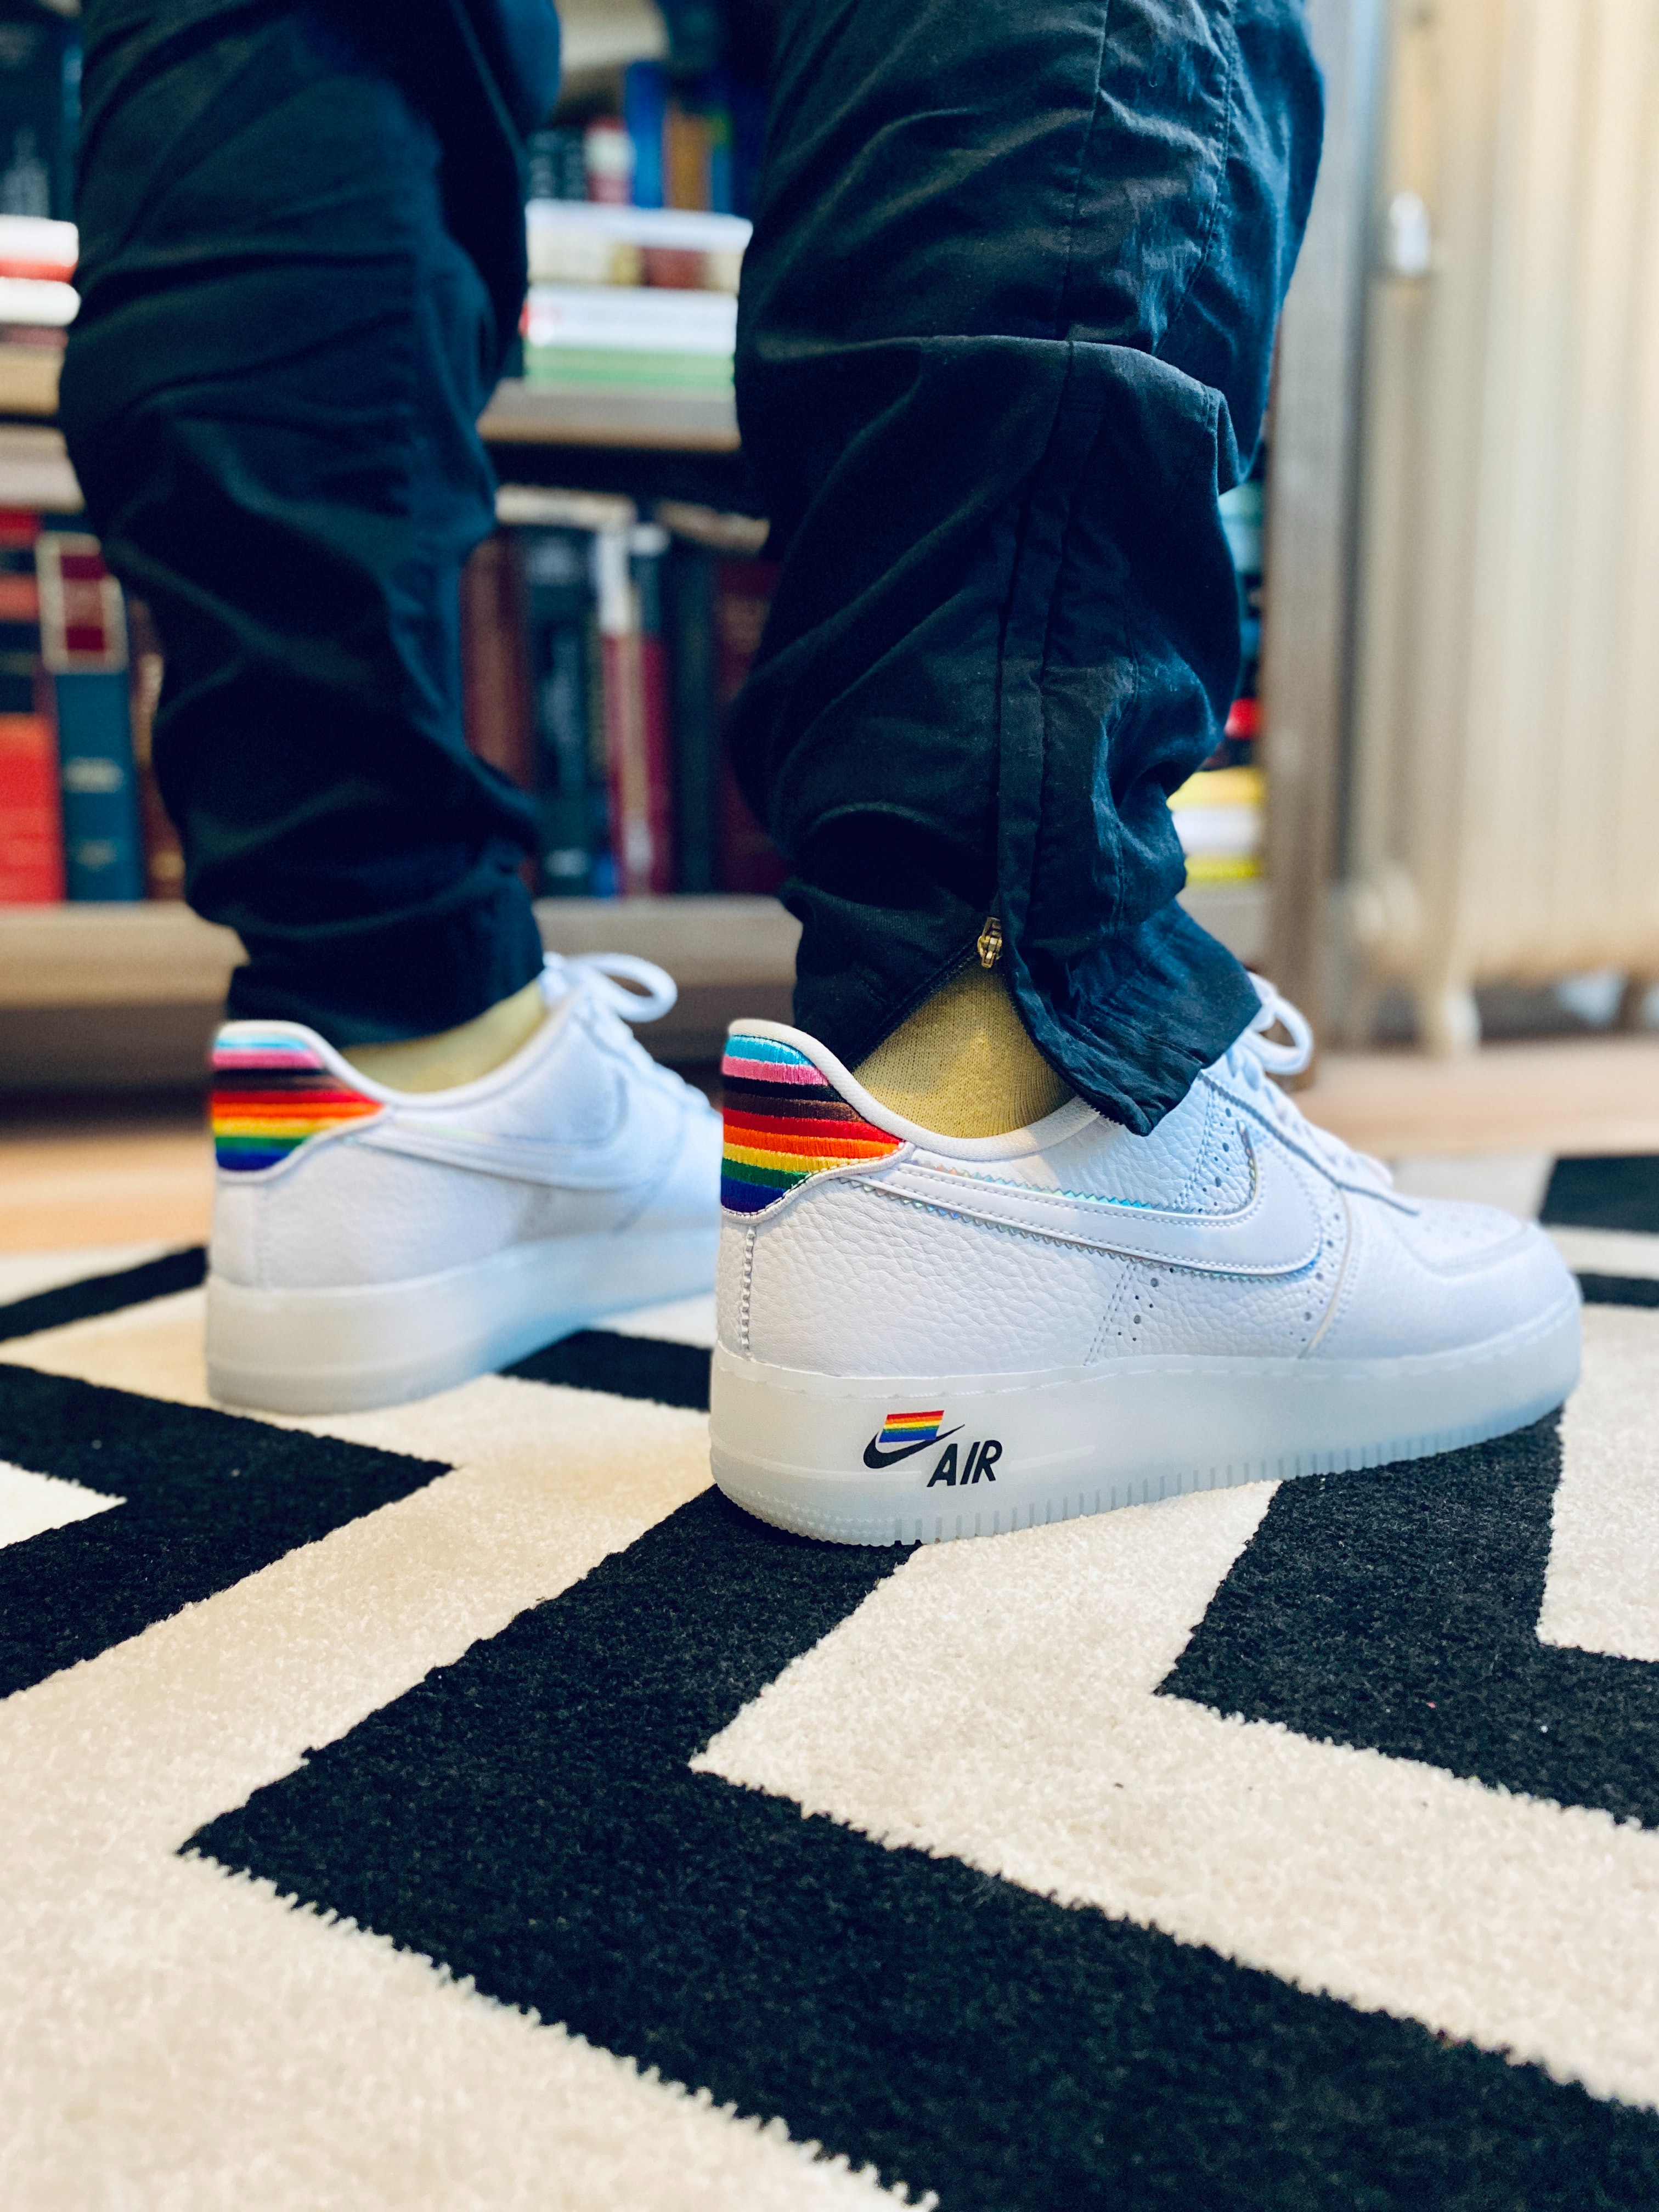 Wearing Nike's Pride-themed Air Force 1: Super gay, super good